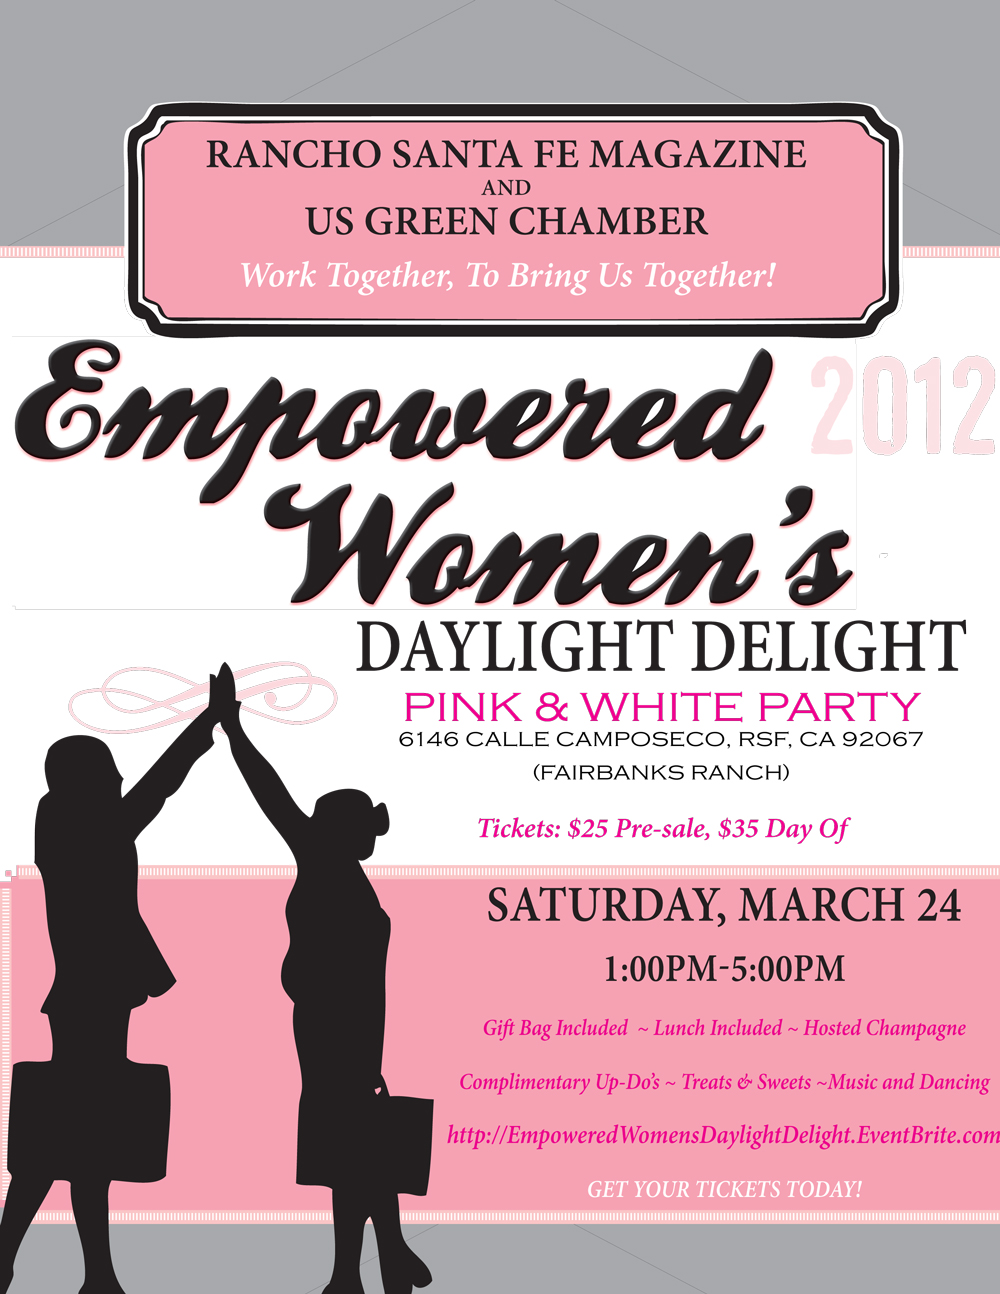 Empowered-Women's-Daylight-Delight-